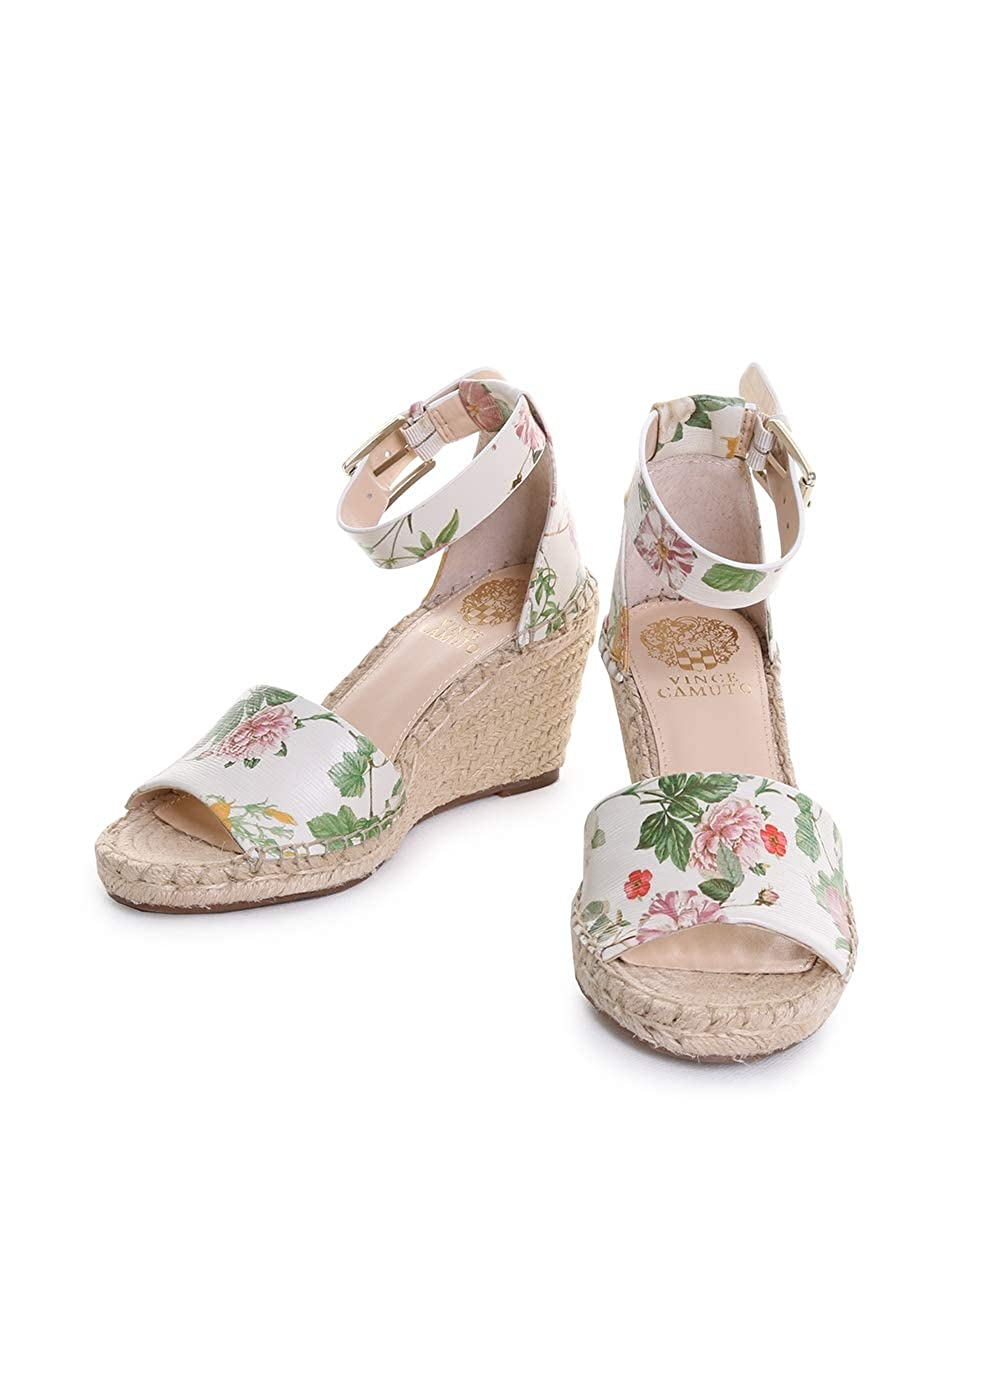 f3423e22ab8 Amazon.com   Vince Camuto Leera Floral Leather Ankle Strap ...